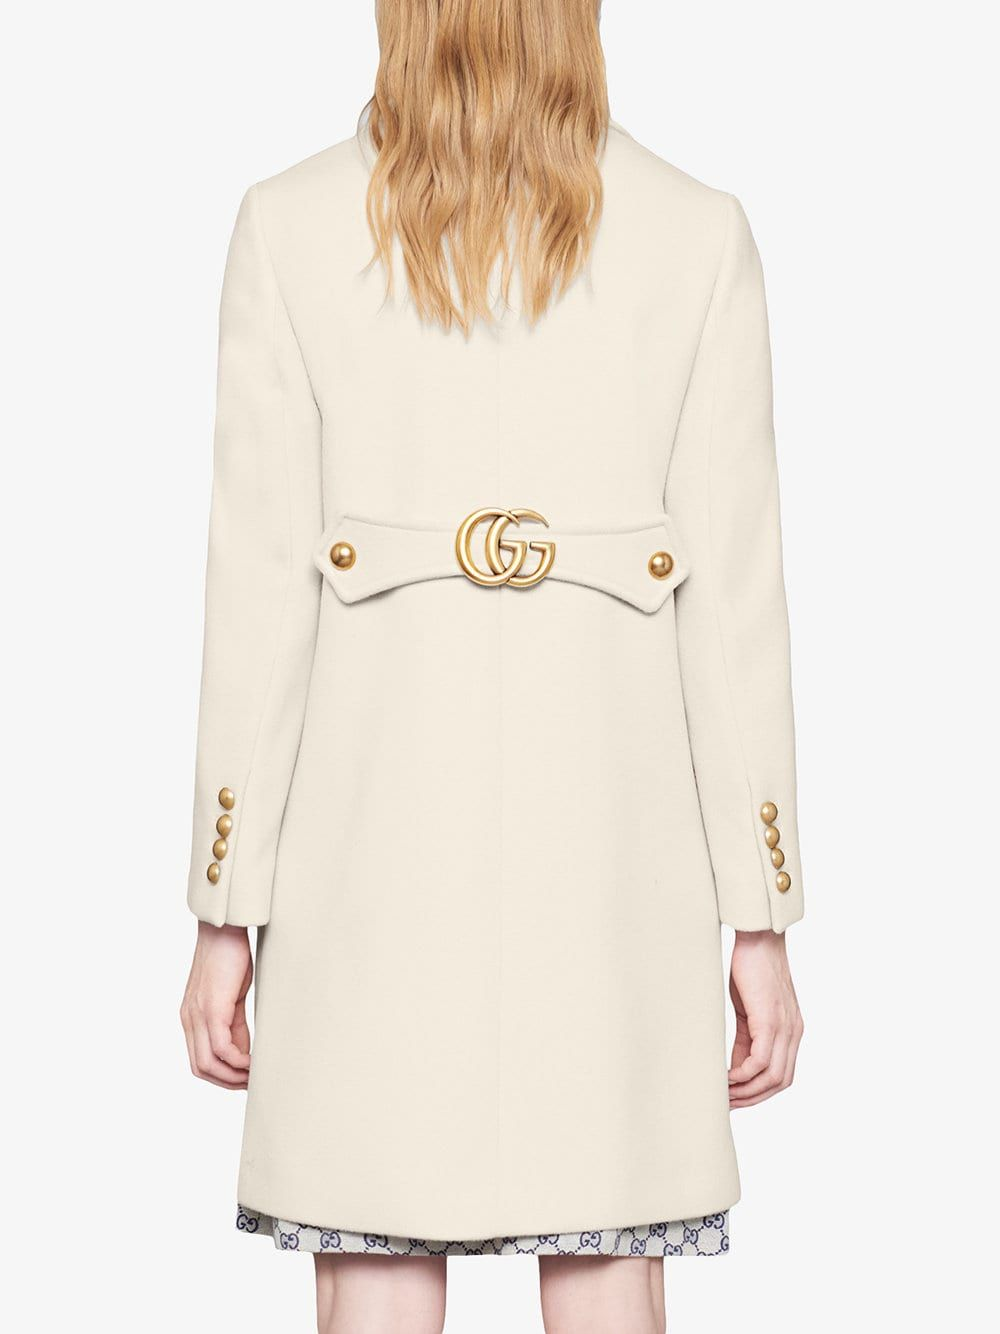 a528e7d44c1 Gucci Wool Coat With Double G in 2019